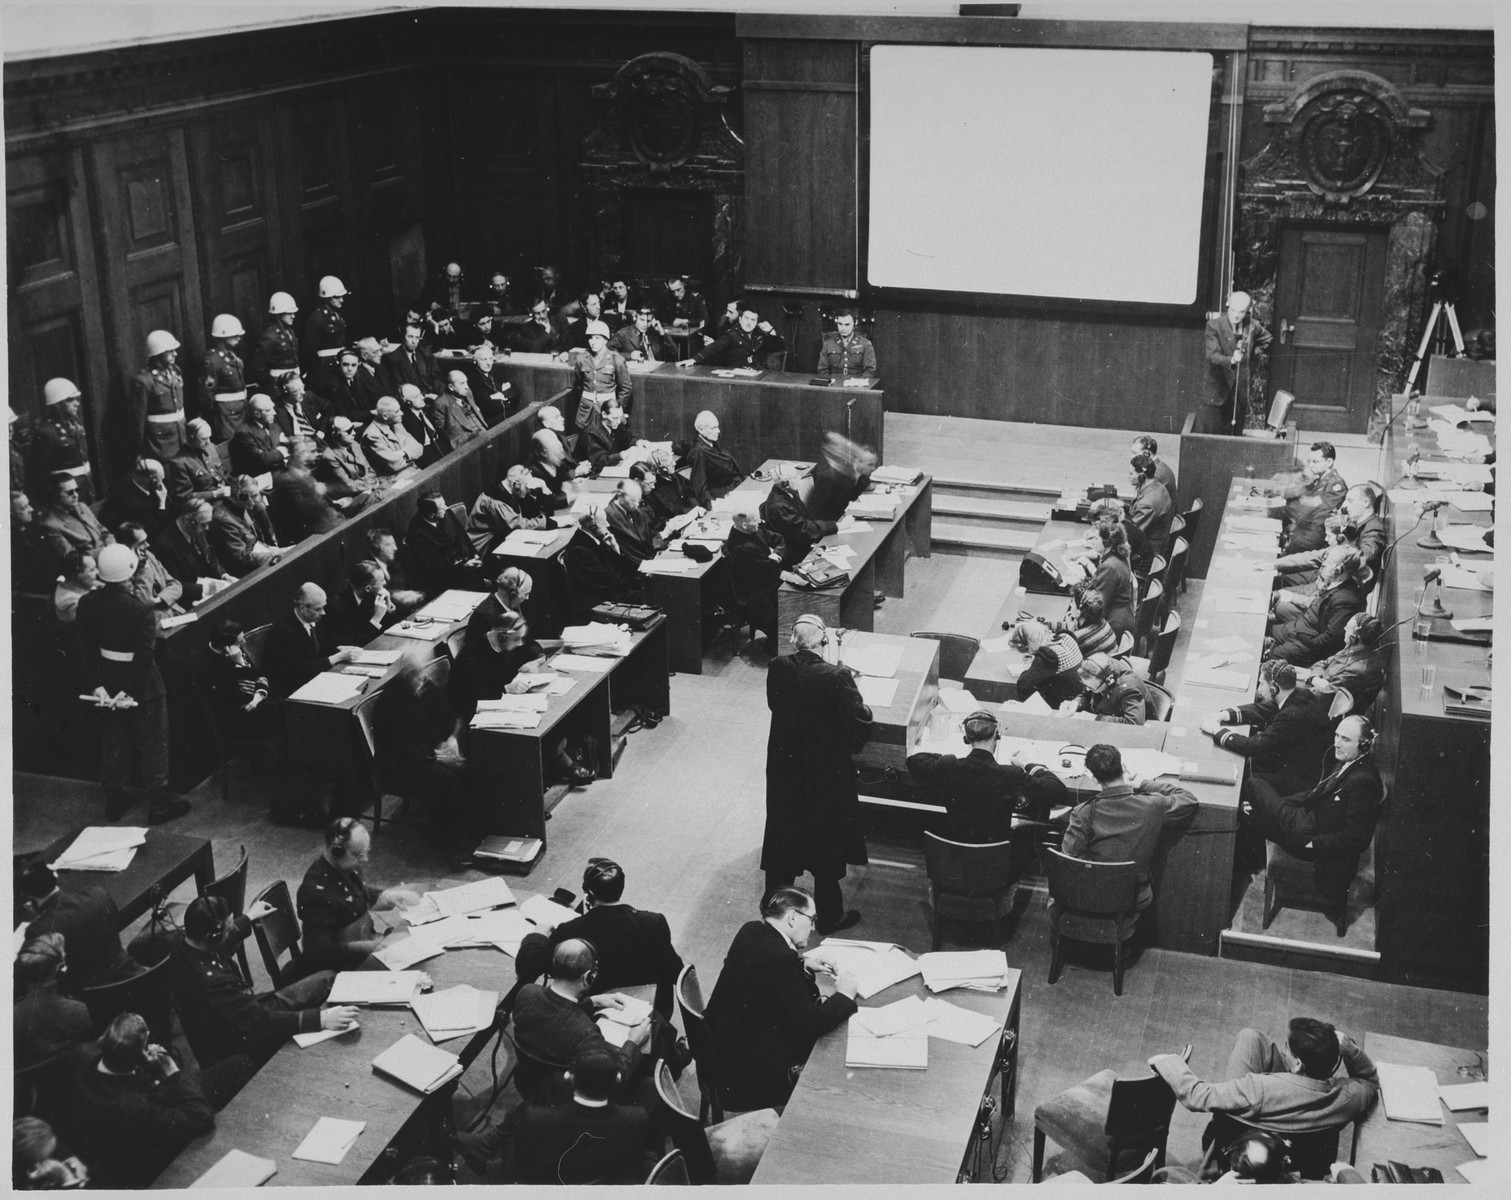 View of the courtroom during the International Military Tribunal proceedings in Nuremberg.